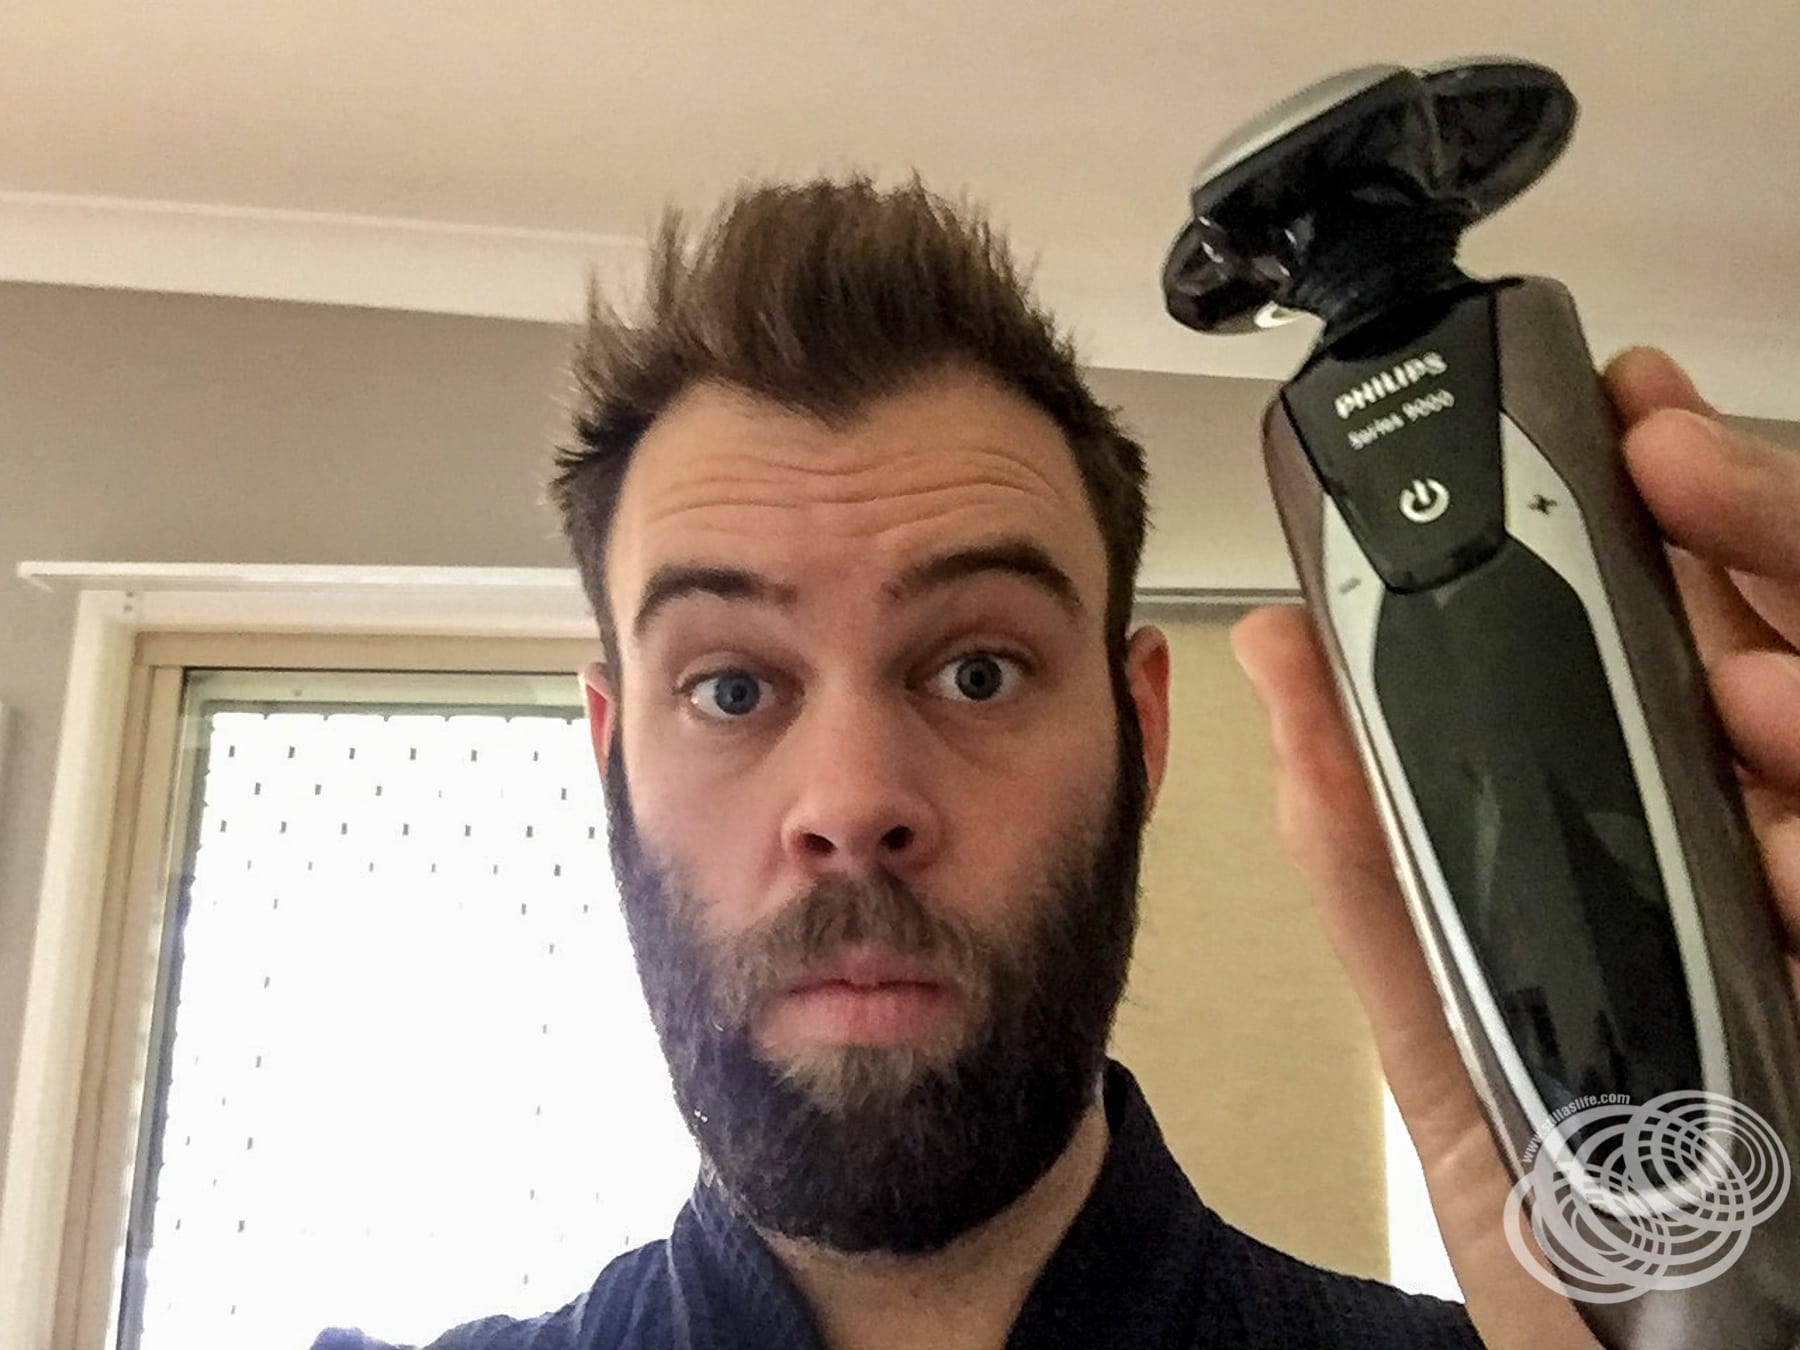 About to use my new Philips 9000 Series Shaver for the first time.